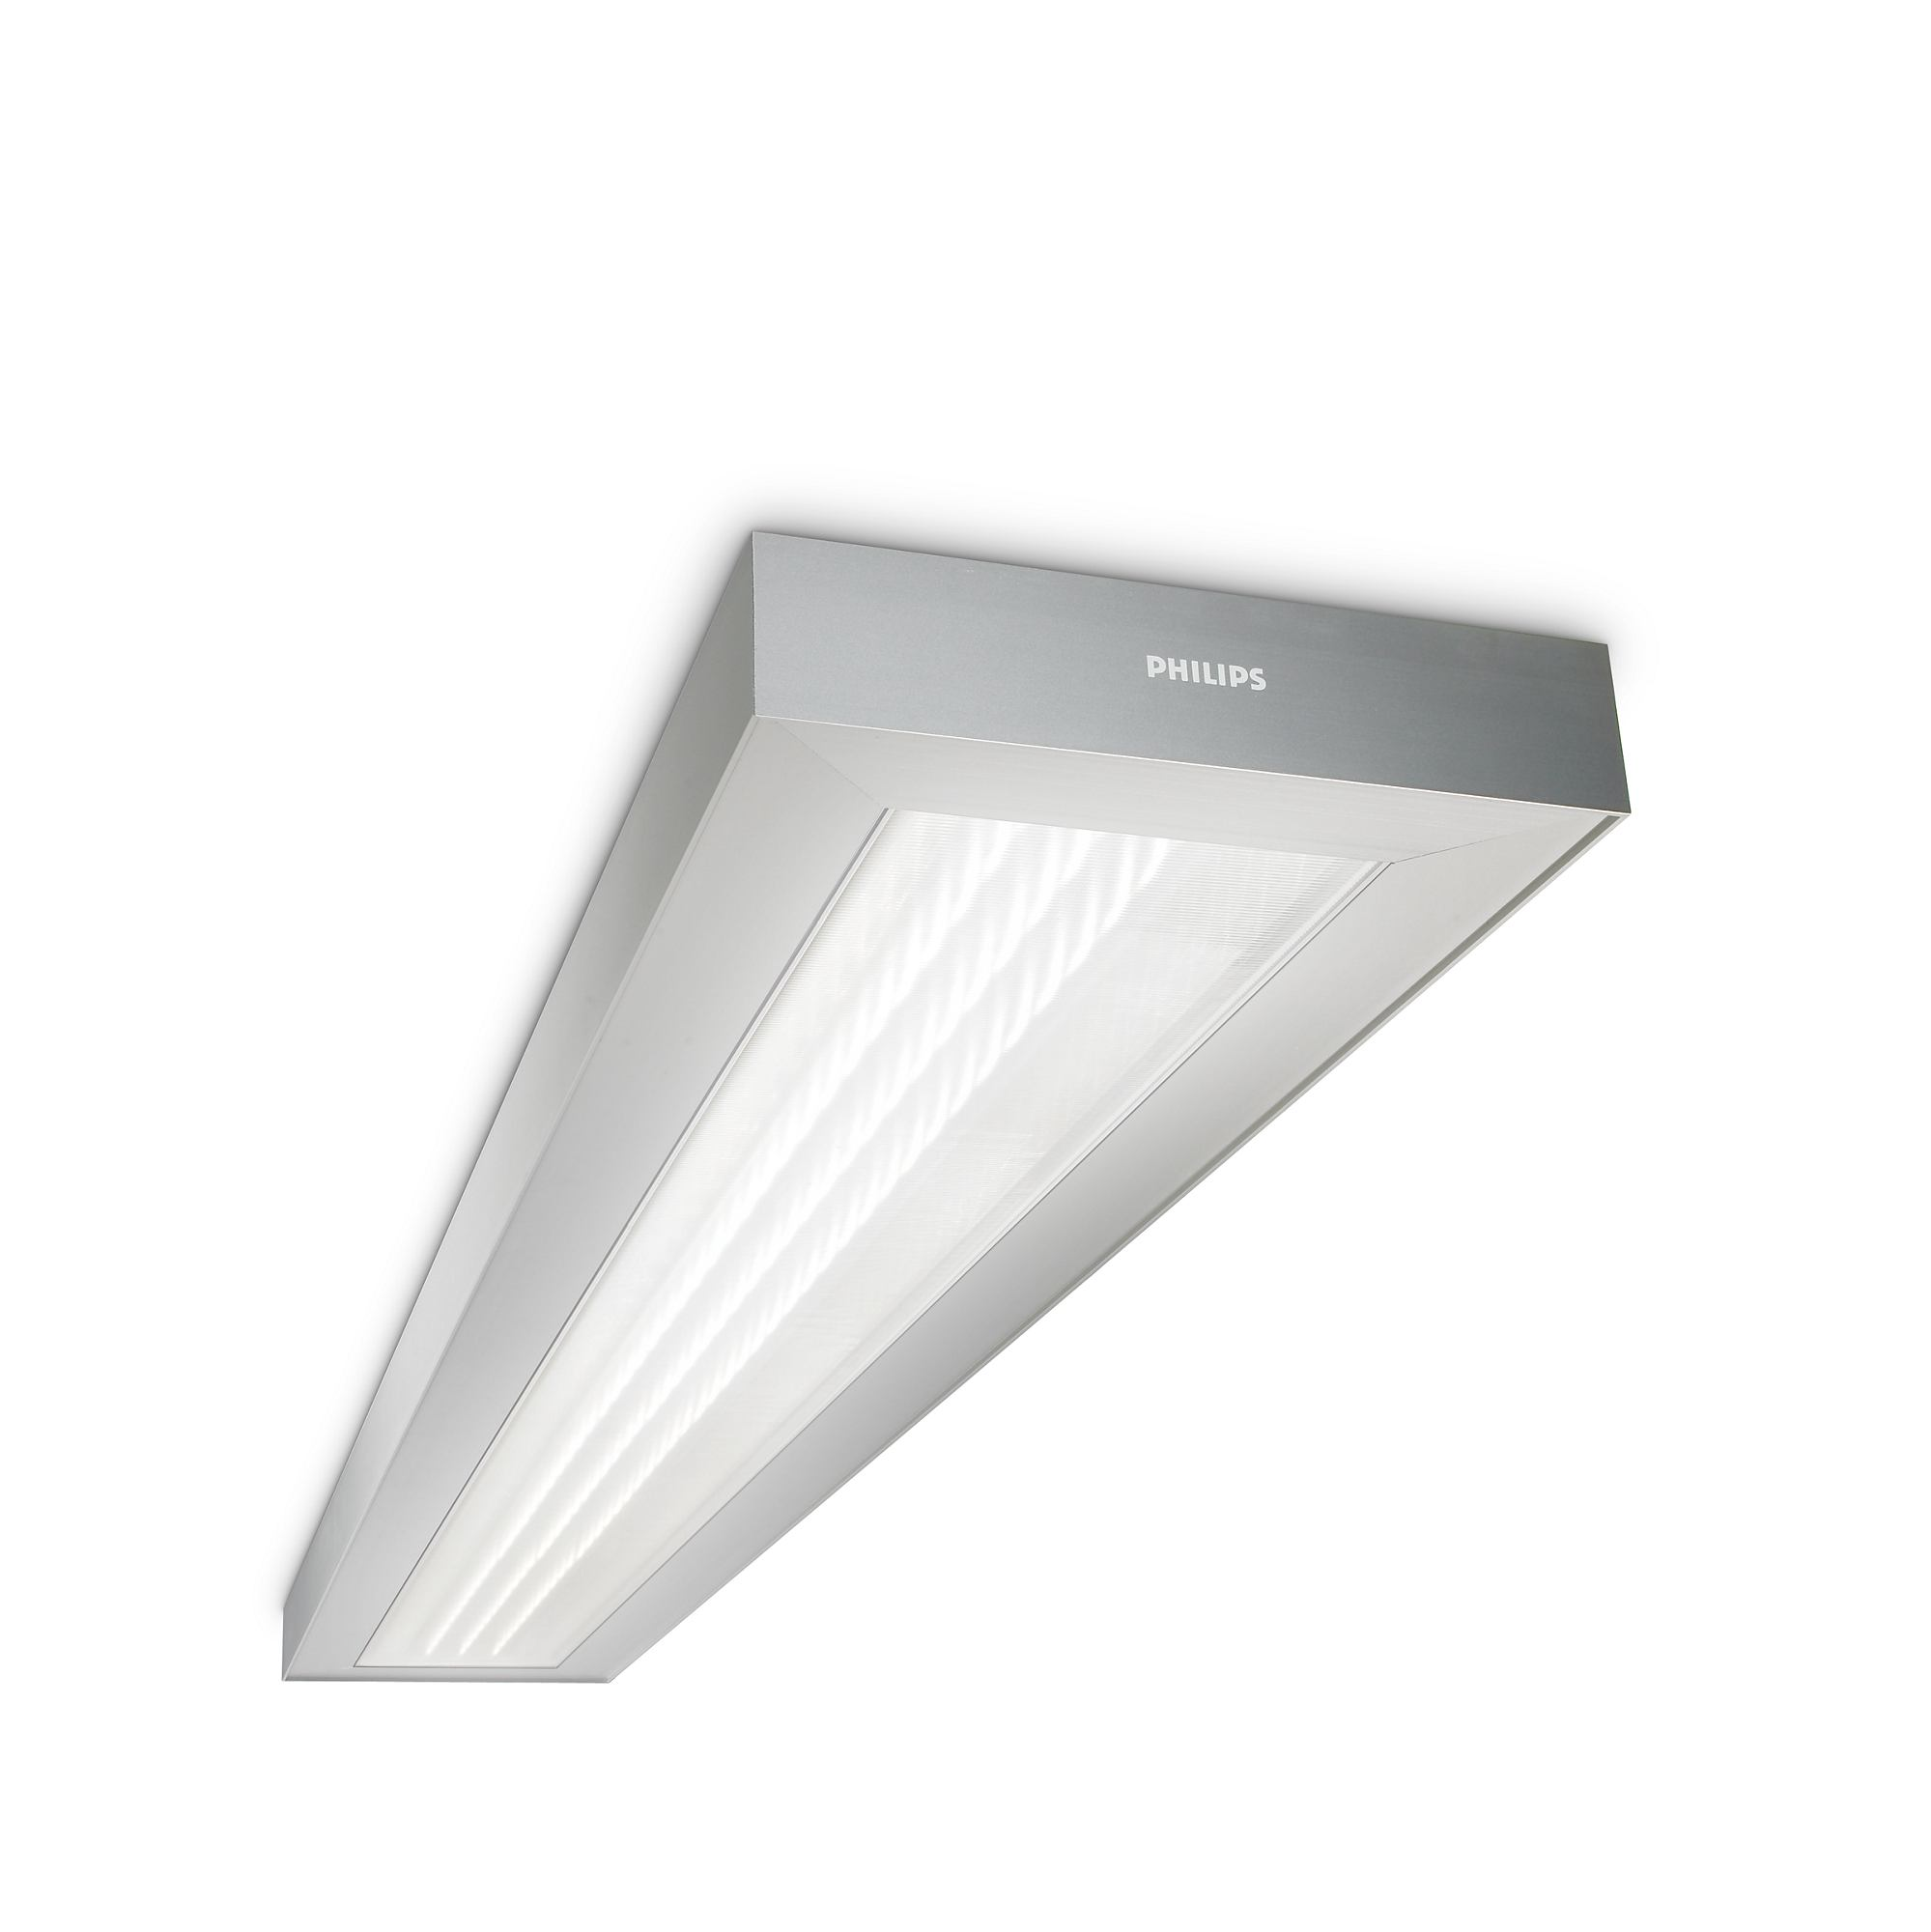 Arano BCS640 led48/840 psd w21l125 lin pc